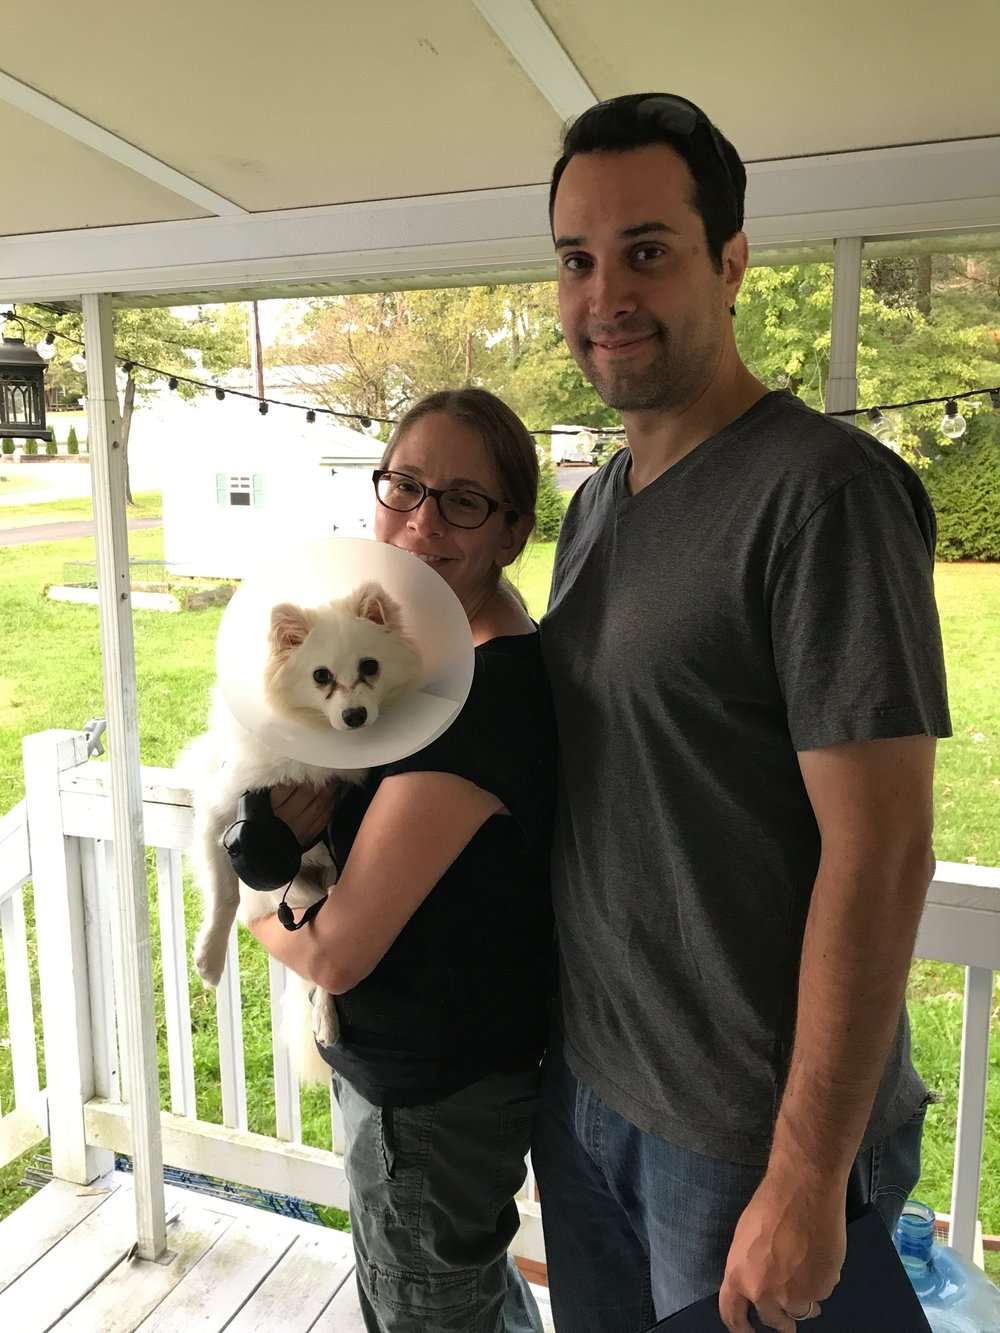 Zooey found her home with Looraine and Mark!